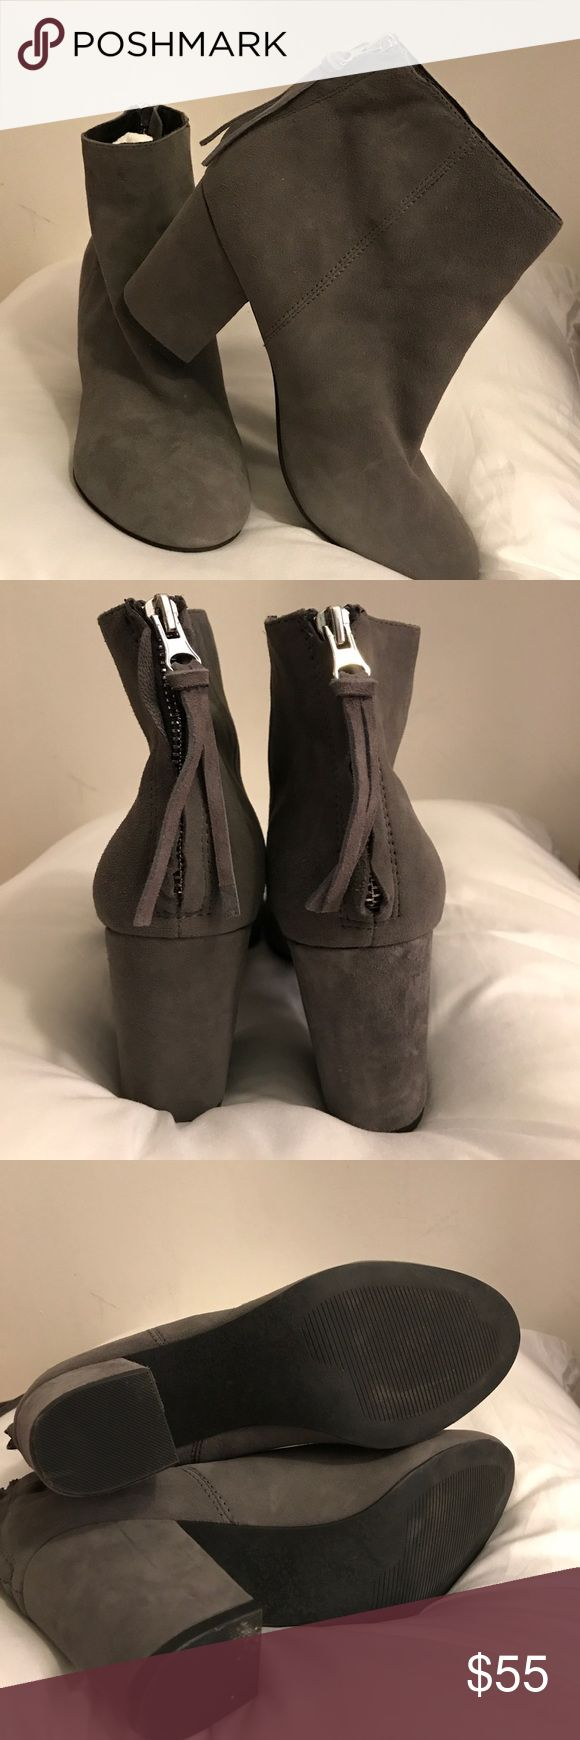 Steve Madden Cynthia booties Awesome grey suede Steve Madden booties. Only worn once!! Looks great with dresses, skirts, or jeans! Steve Madden Shoes Ankle Boots & Booties